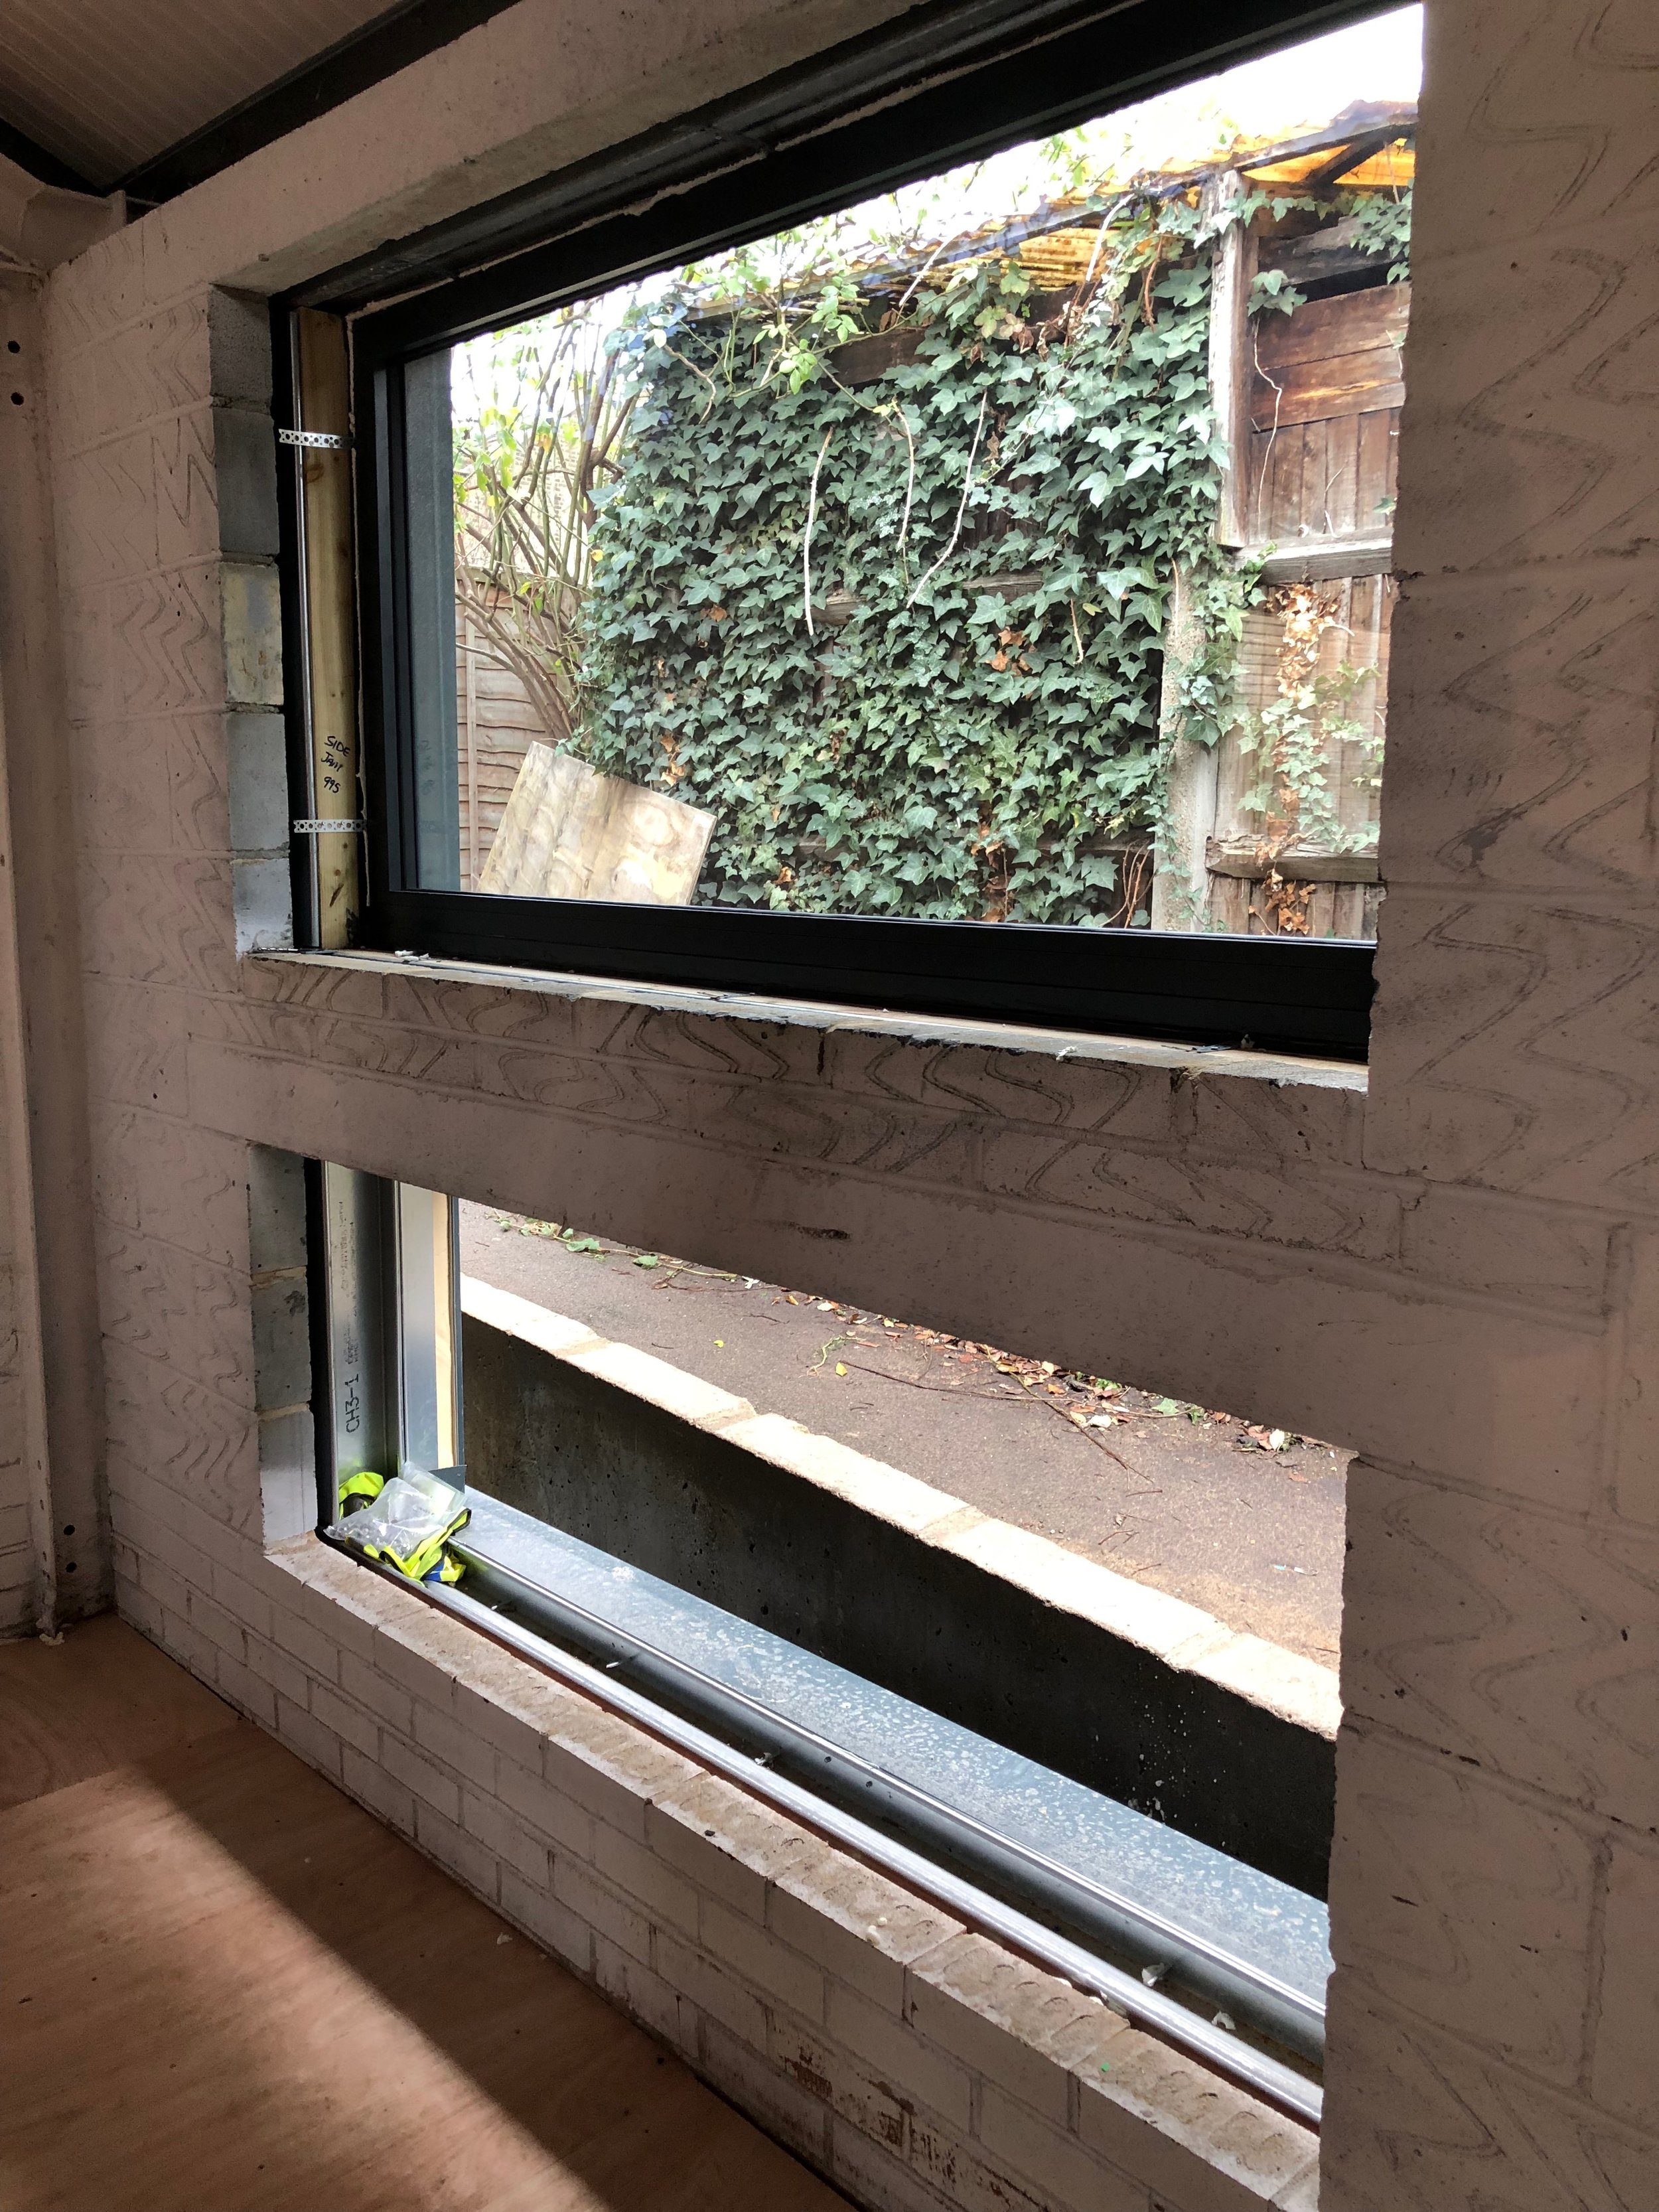 Double glazed for thermal and acoustic insulation